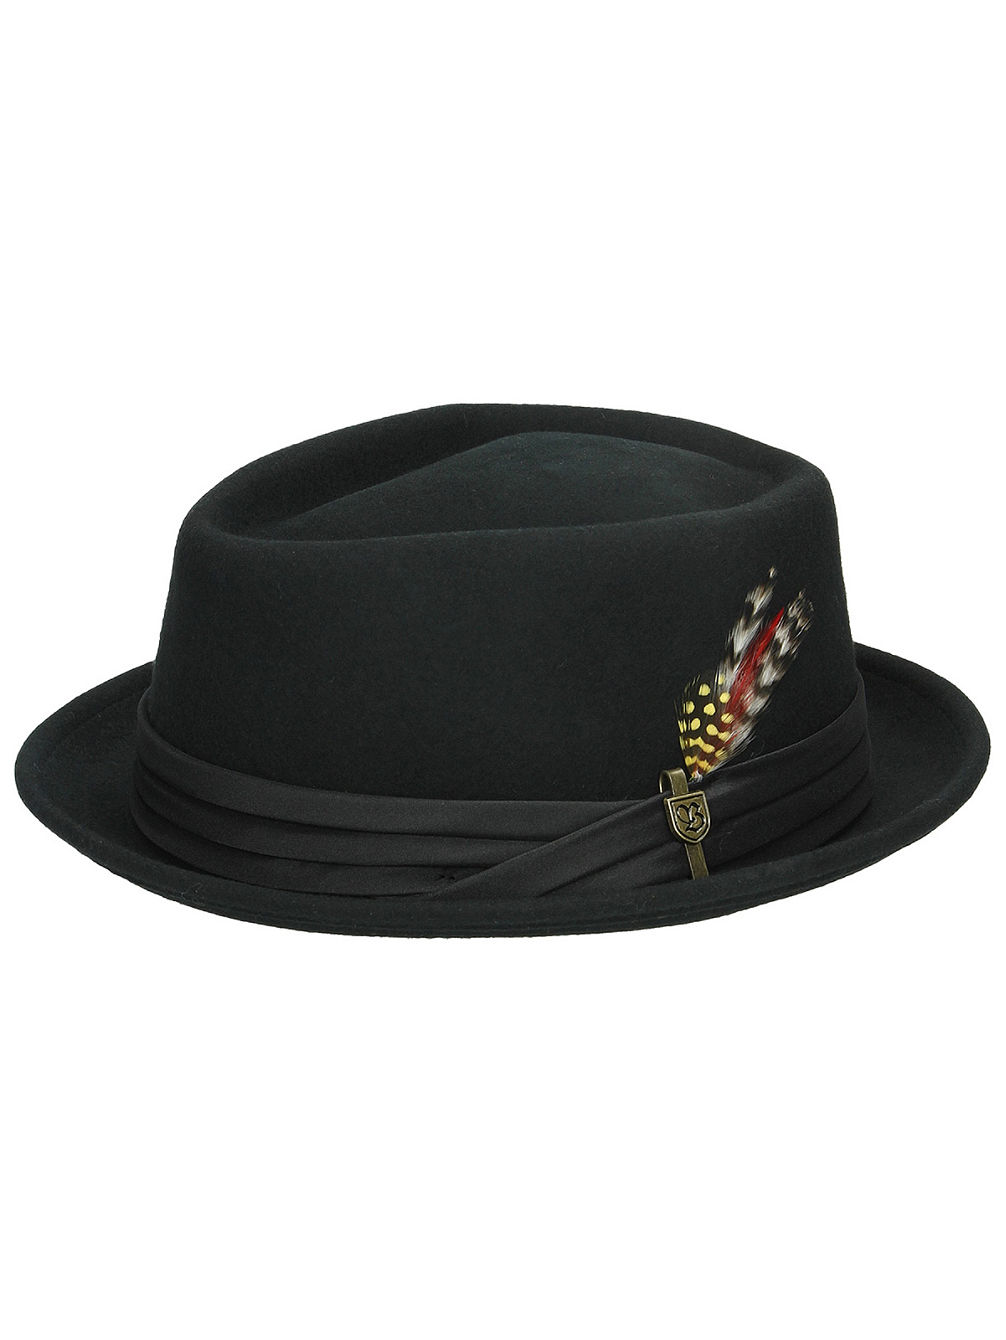 Stout Pork Pie Hat